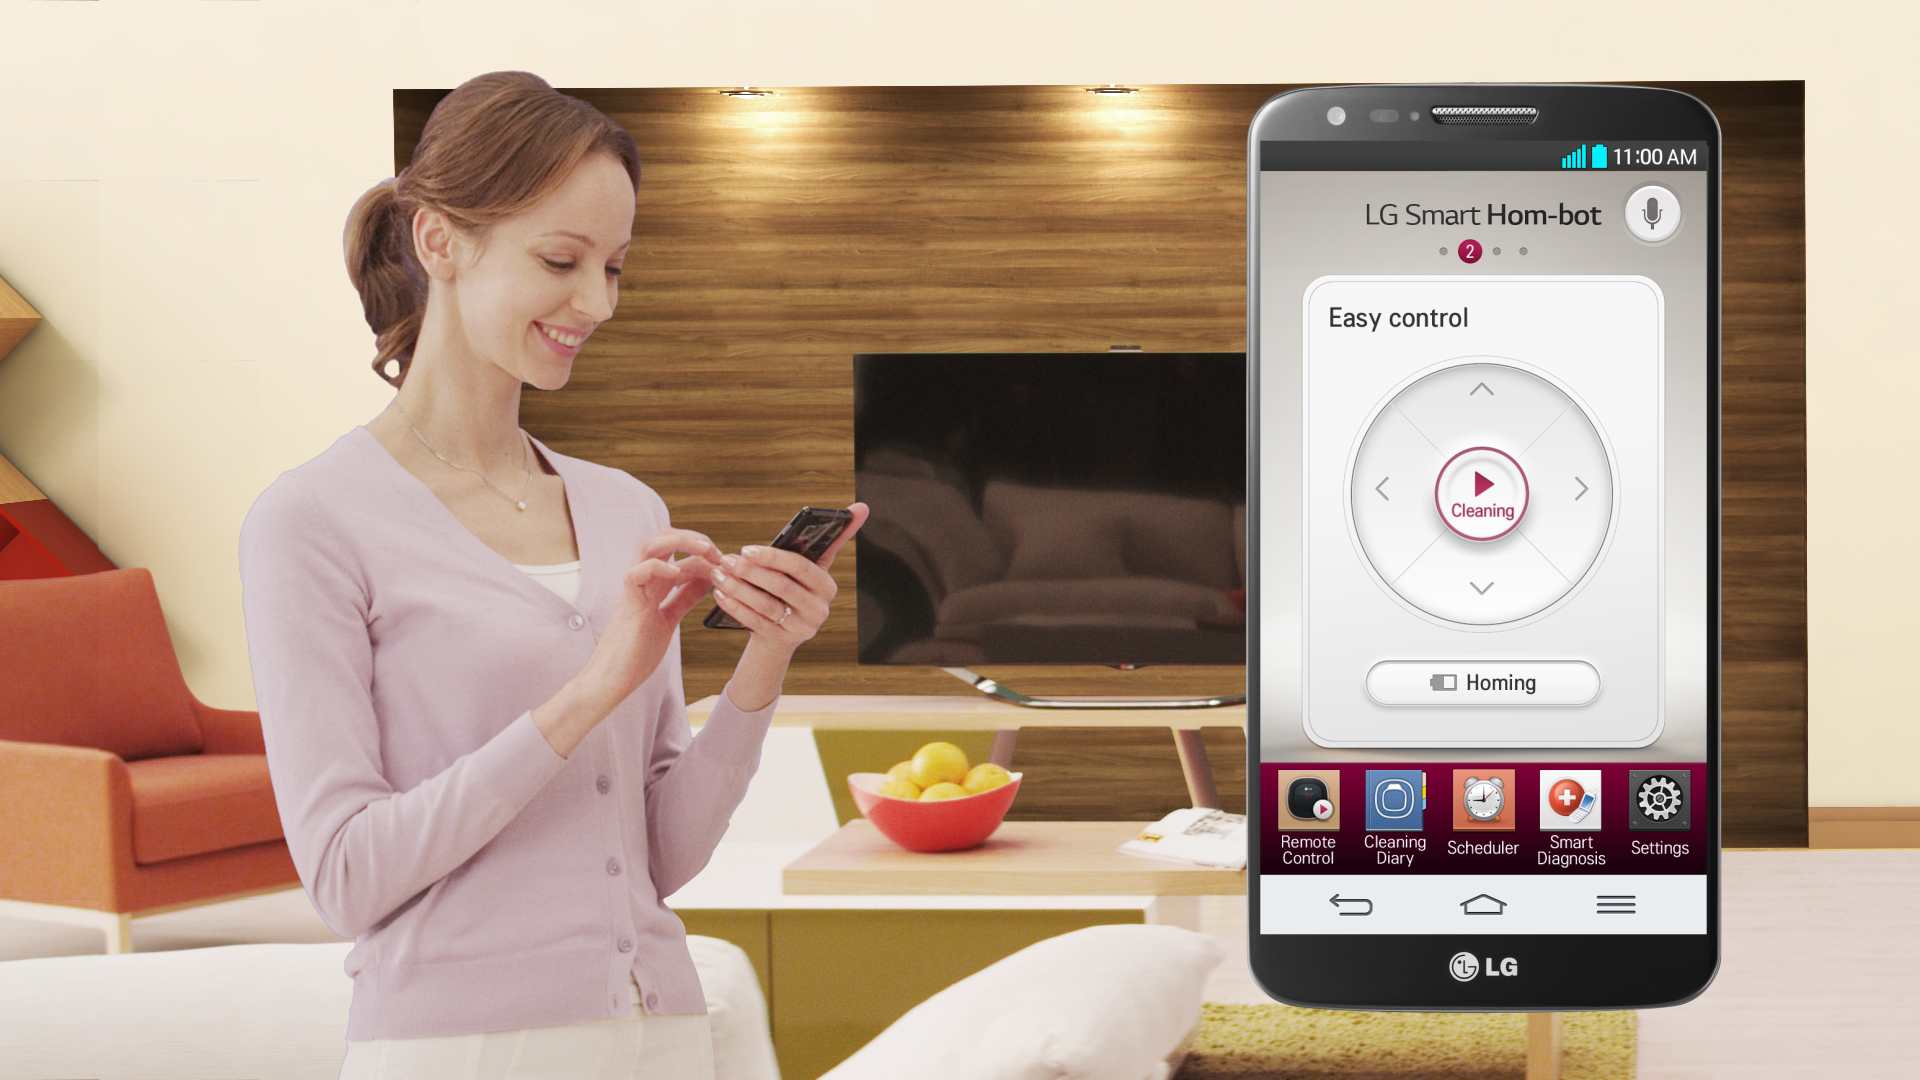 A woman remotely controlling her LG HOM-BOT with the smart app on her phone